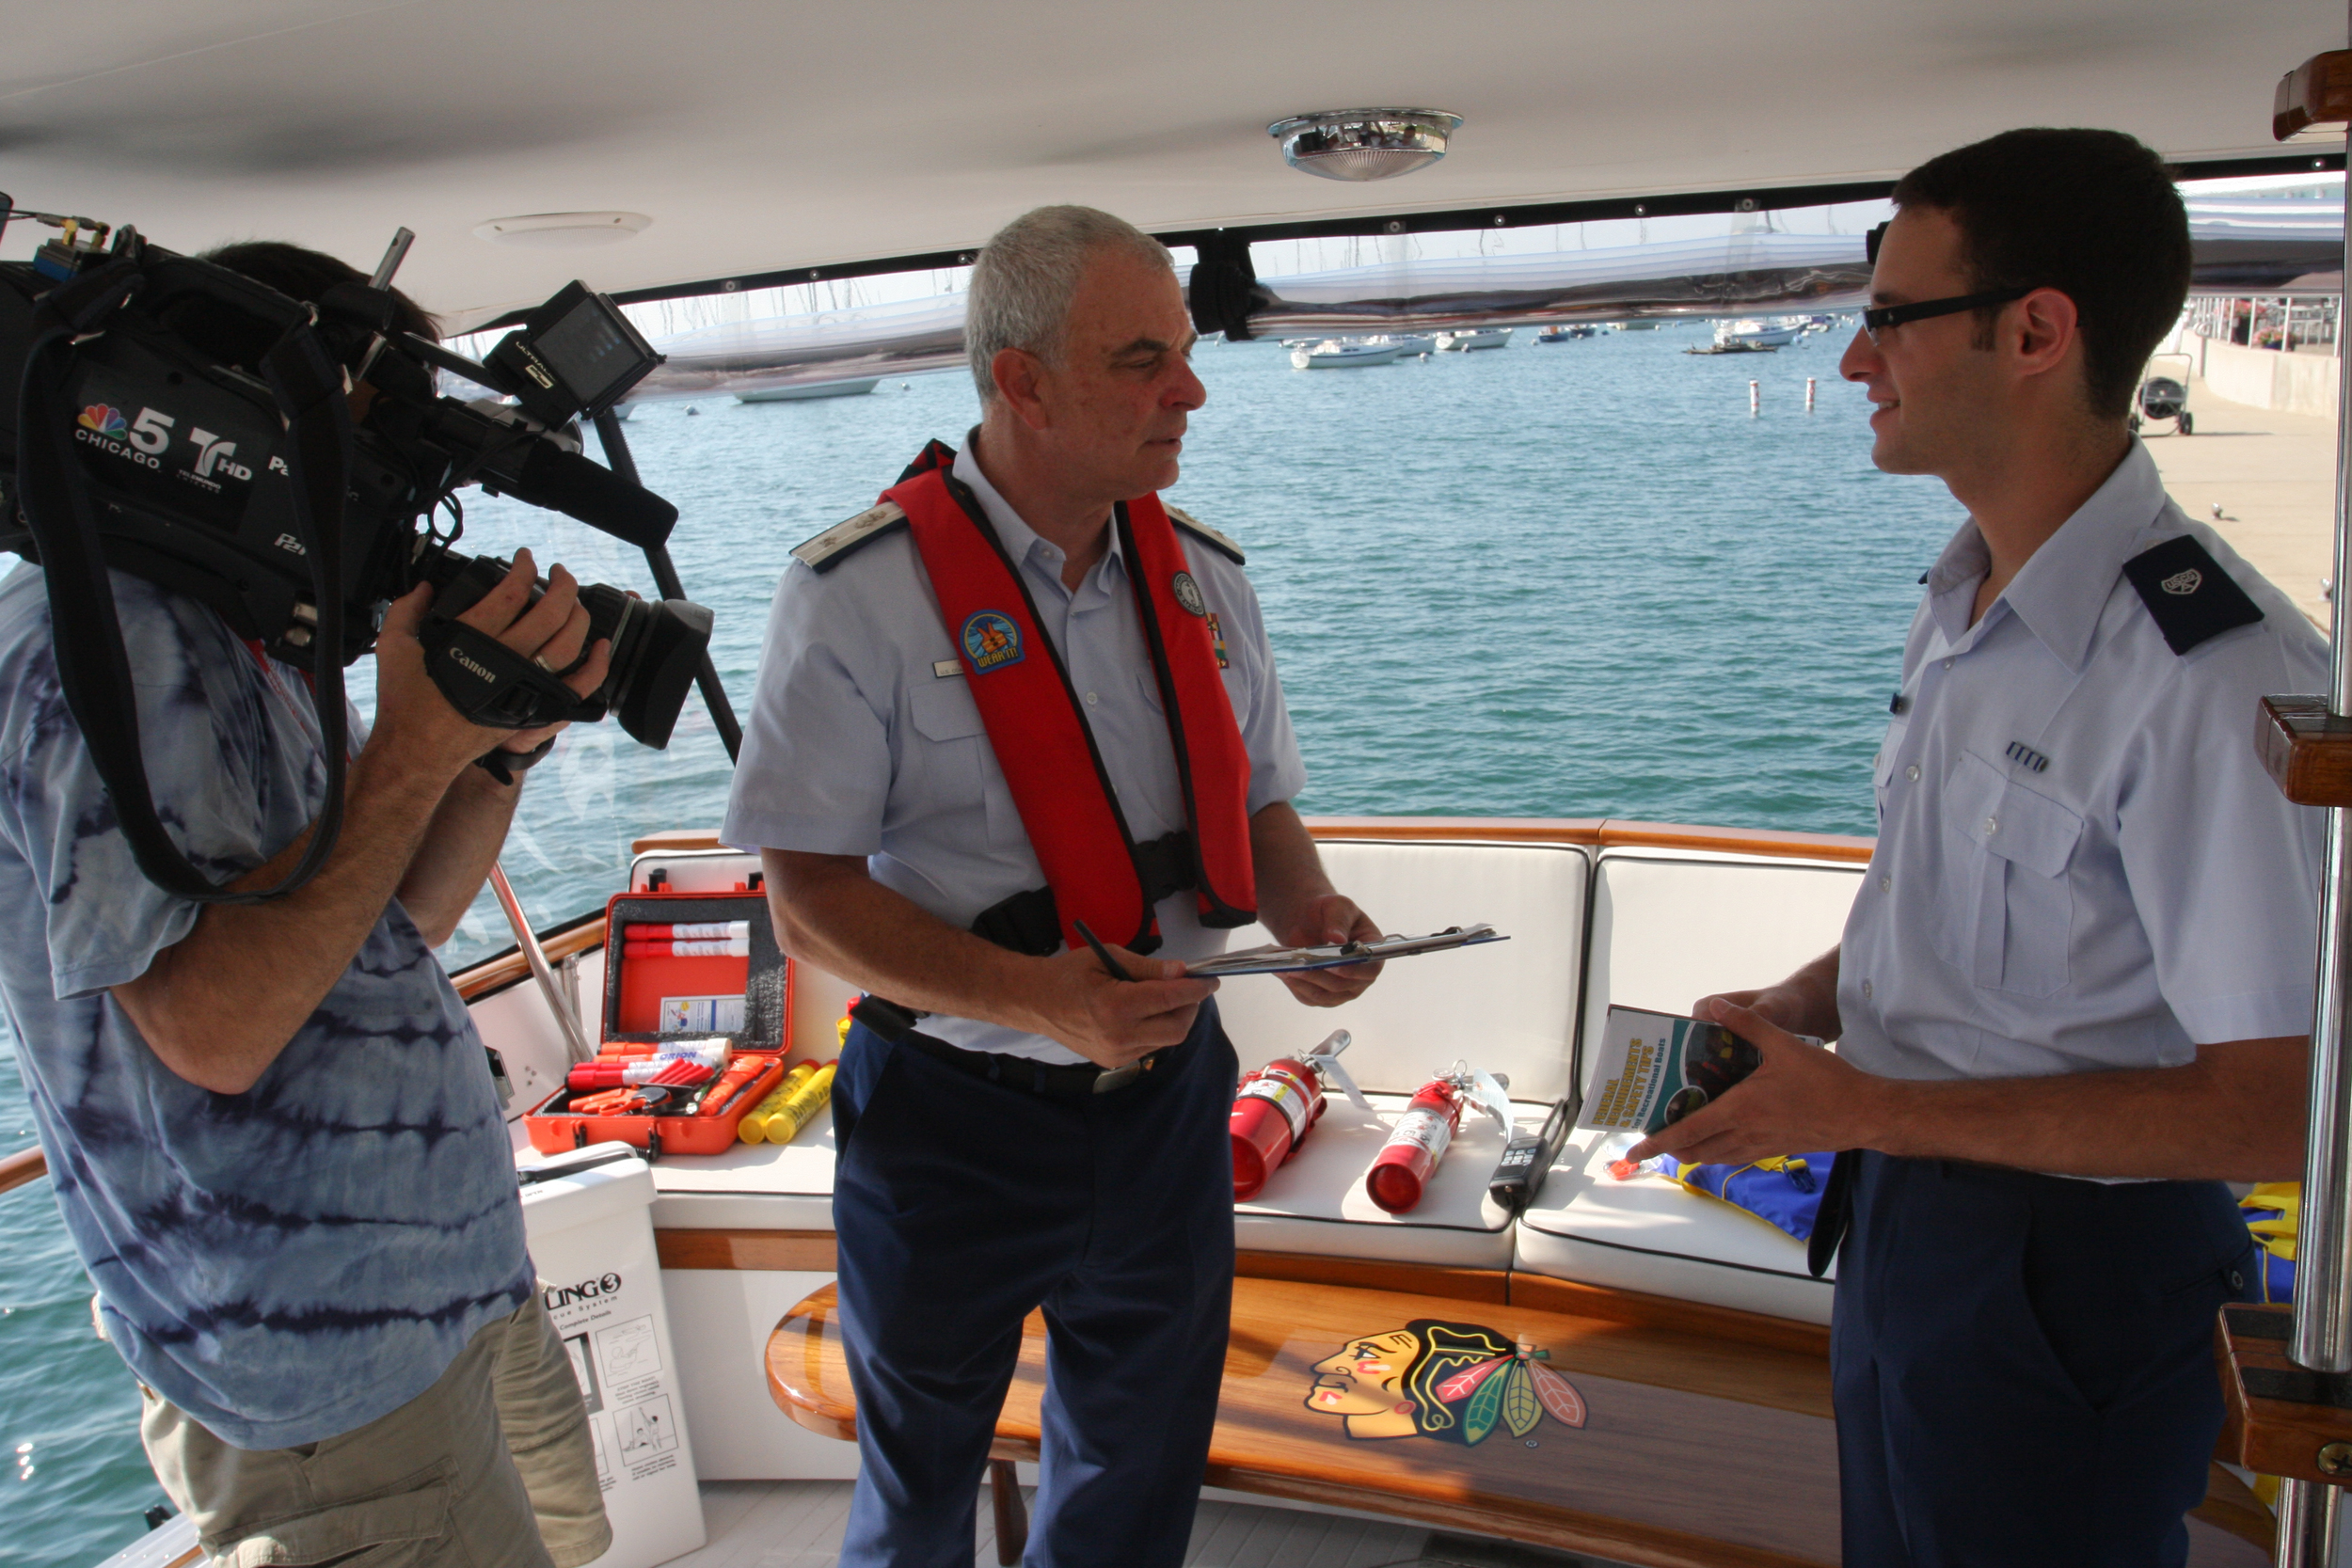 """Roth talks with past District 9WR Commodore Randy Podolsky and a news cameraman on the yacht """"Blackhawk"""" at Monroe Harbor in Chicago, July 19, 2013. Earlier, Commodore Podolsky emphasized the Auxiliary's boating safety mission on live television. Roth assisted with the media event. U.S. Coast Guard photo by Chief Petty Officer Alan Haraf."""